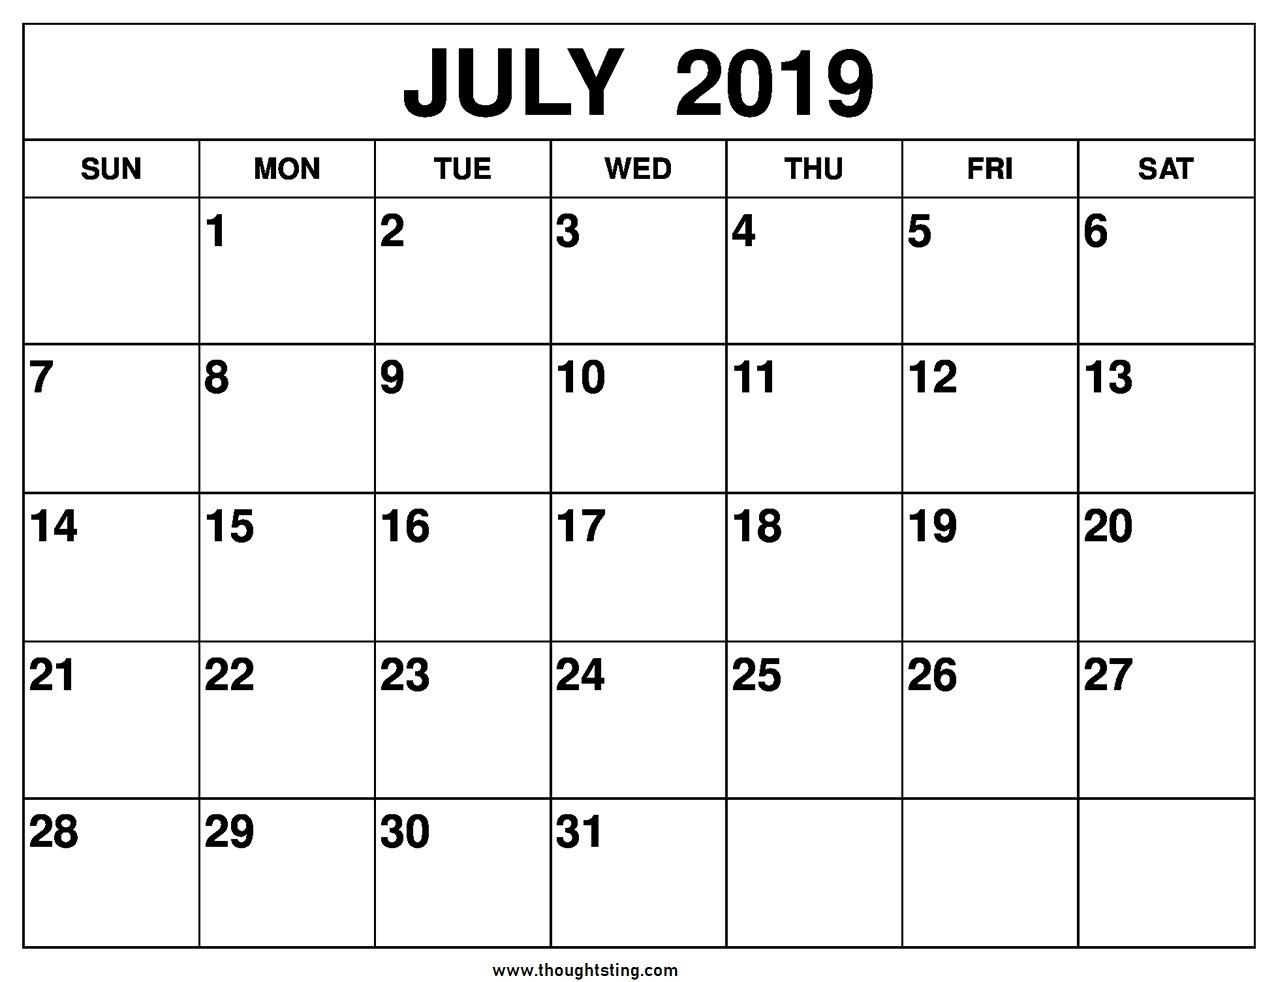 July 2019 Calendar Printable One Page Template - Free  Calendar Page Full Page